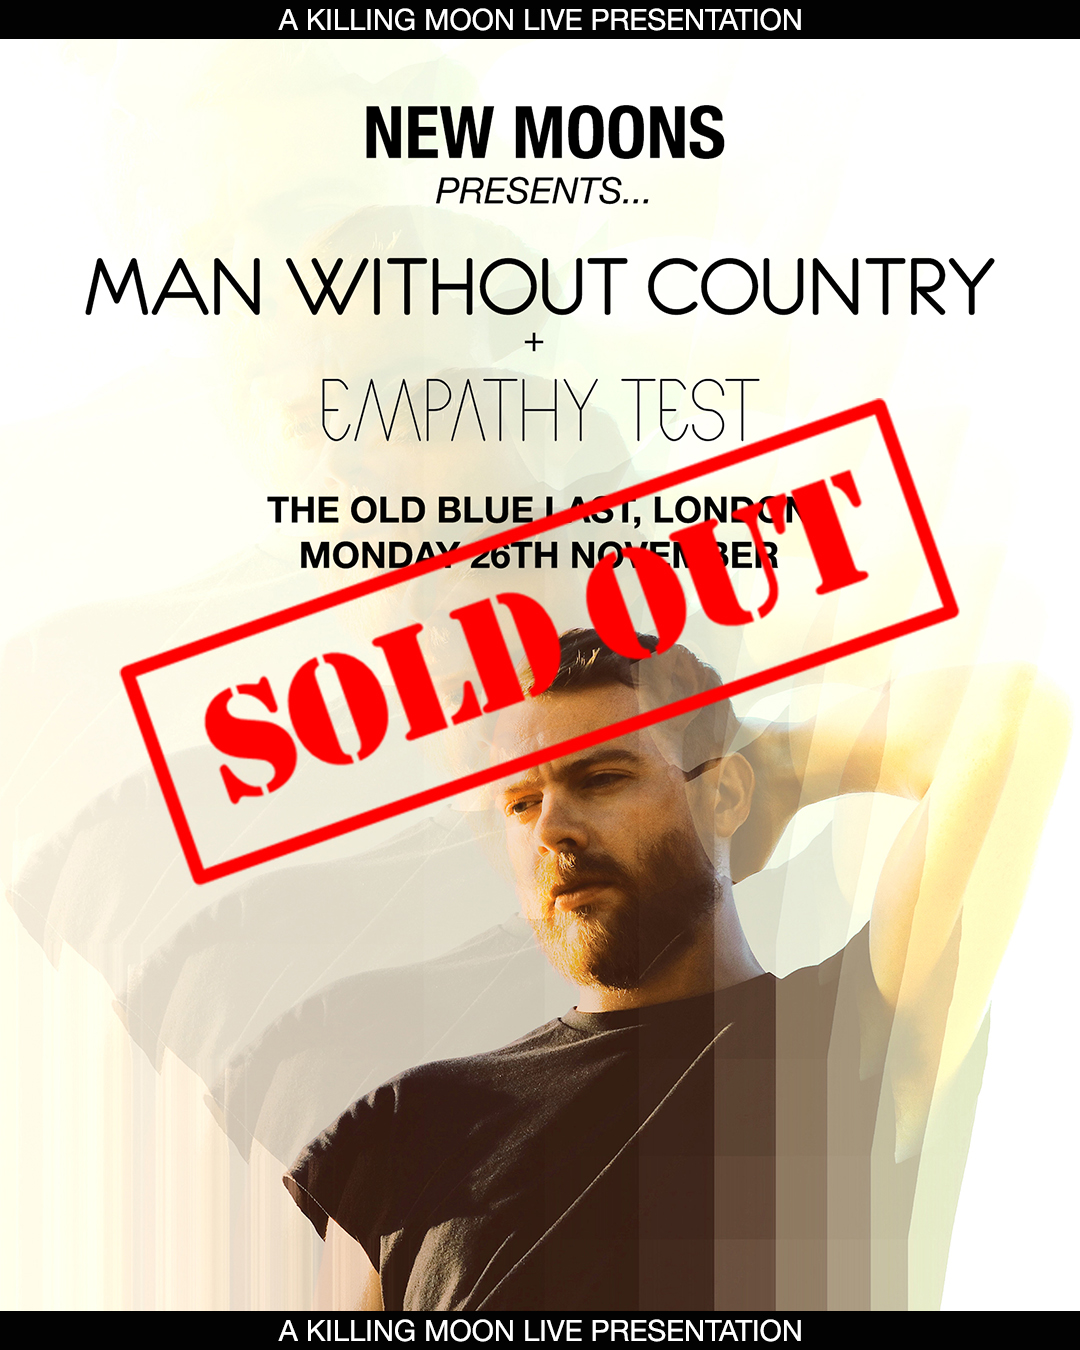 MWC-OldBlueLast-SoldOut (1)